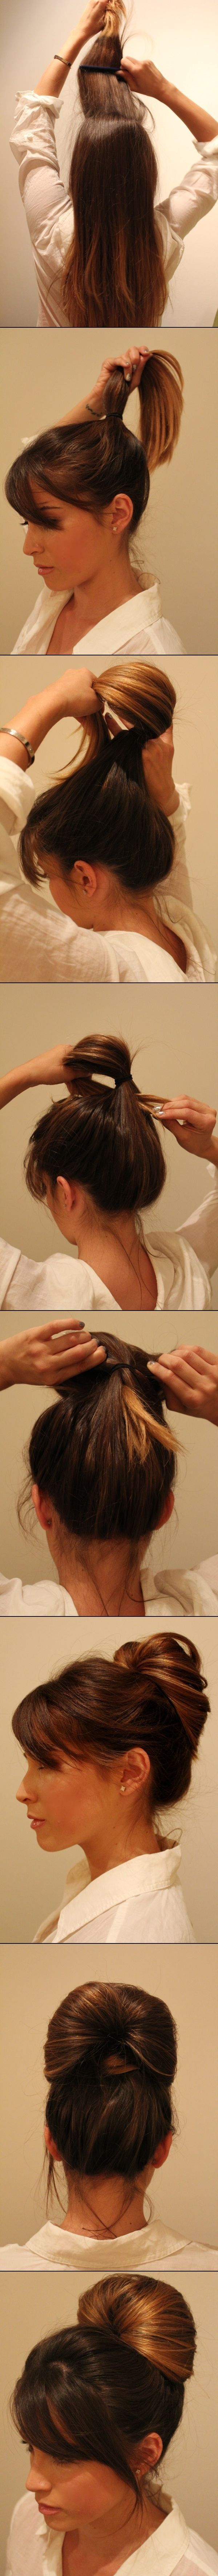 This hairstyle is easily done in a minute and looks quite professional Hairstyling Hacks for Lazy Girl